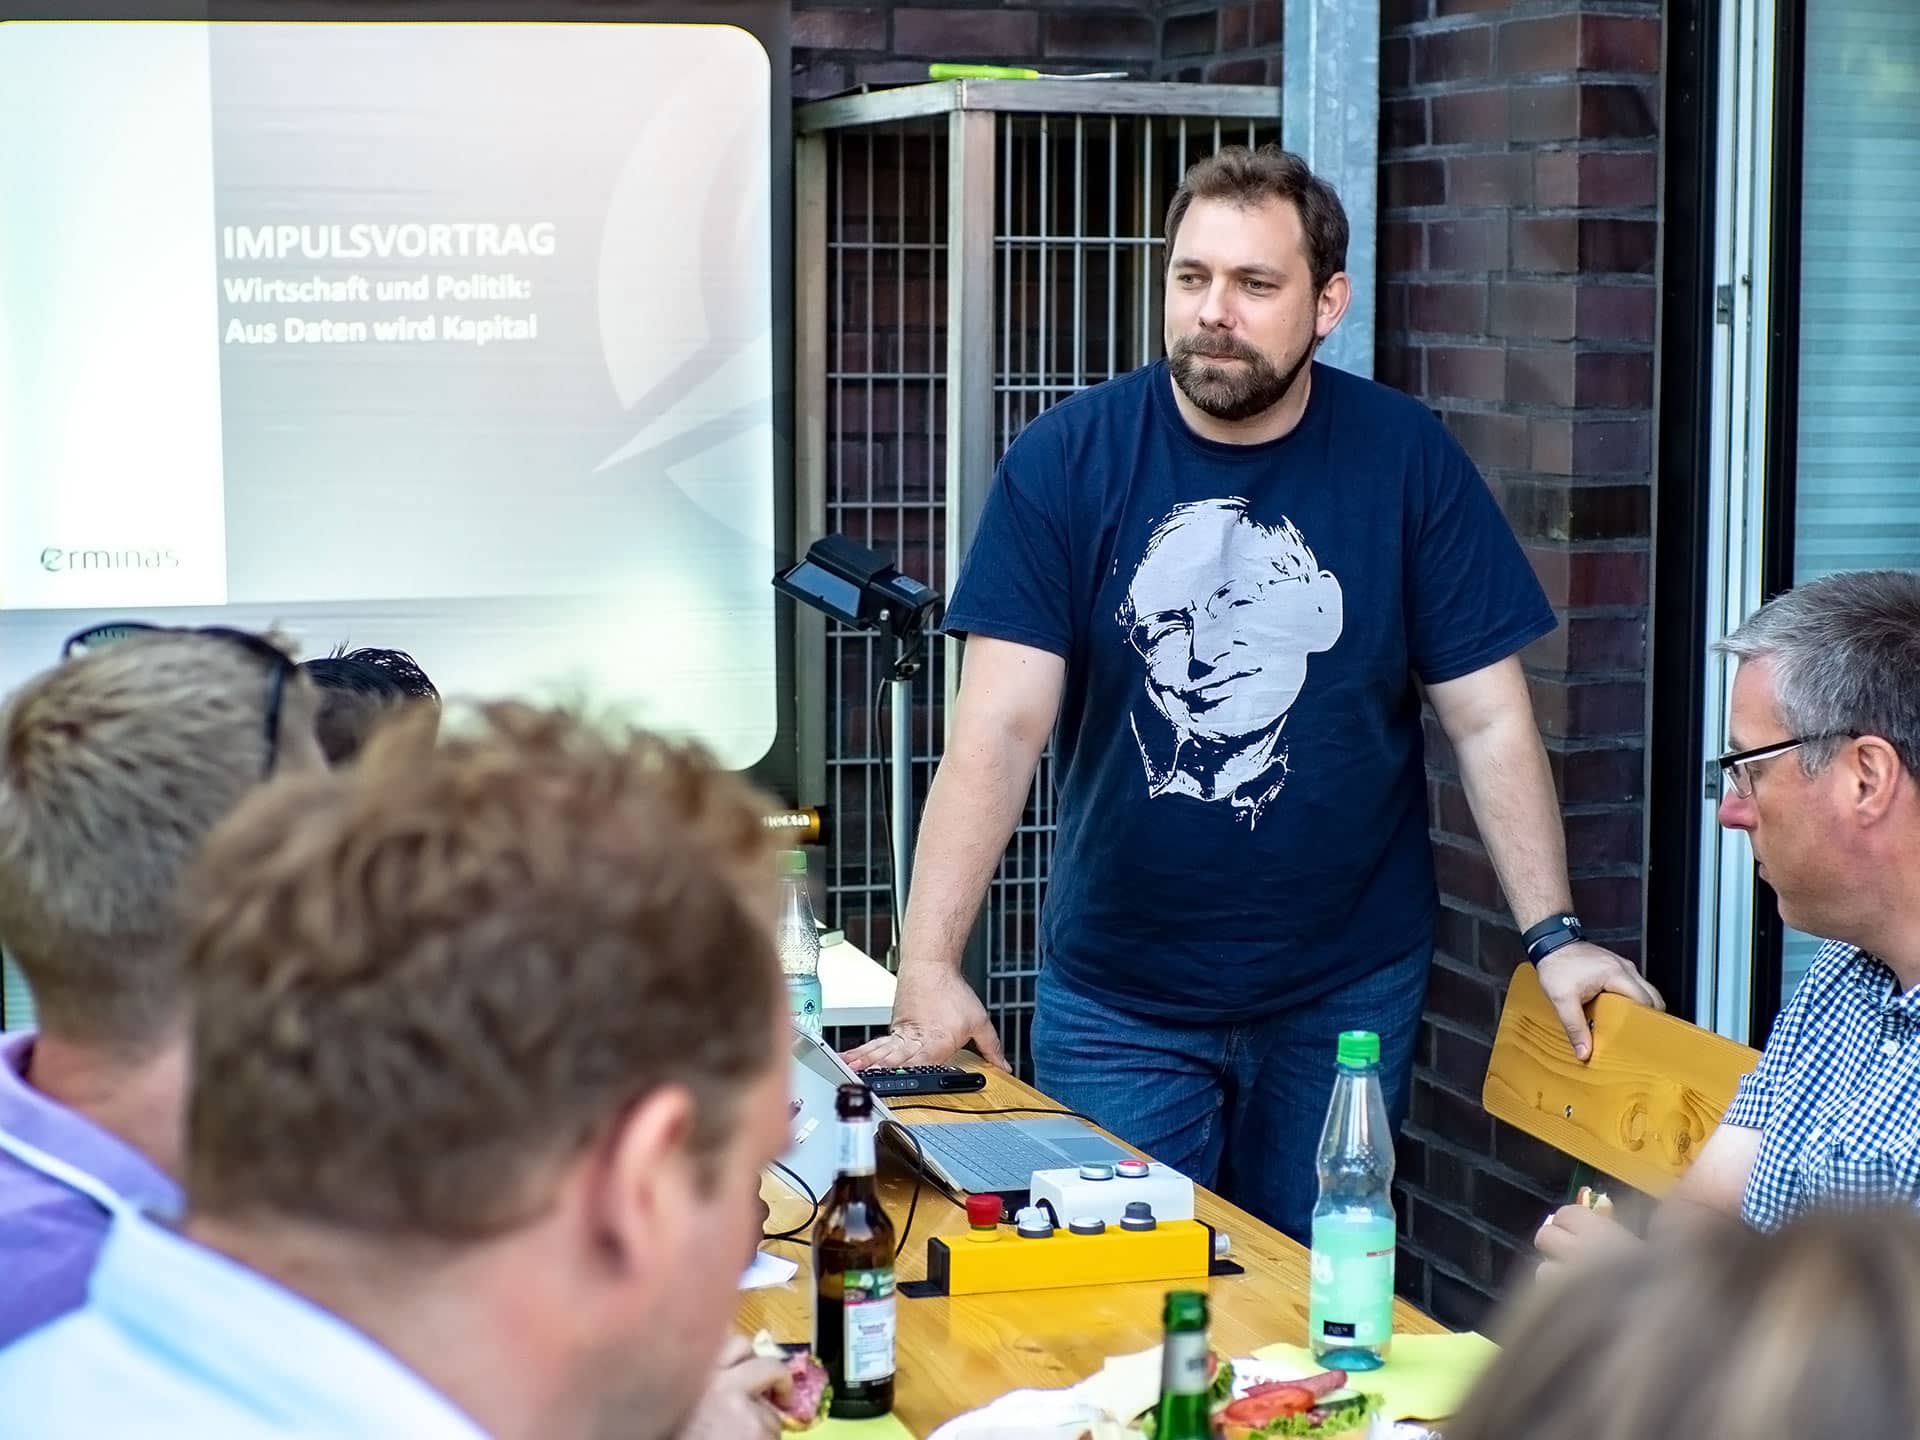 Boris Crismancich über Machine Learning beim erminas MeetUp